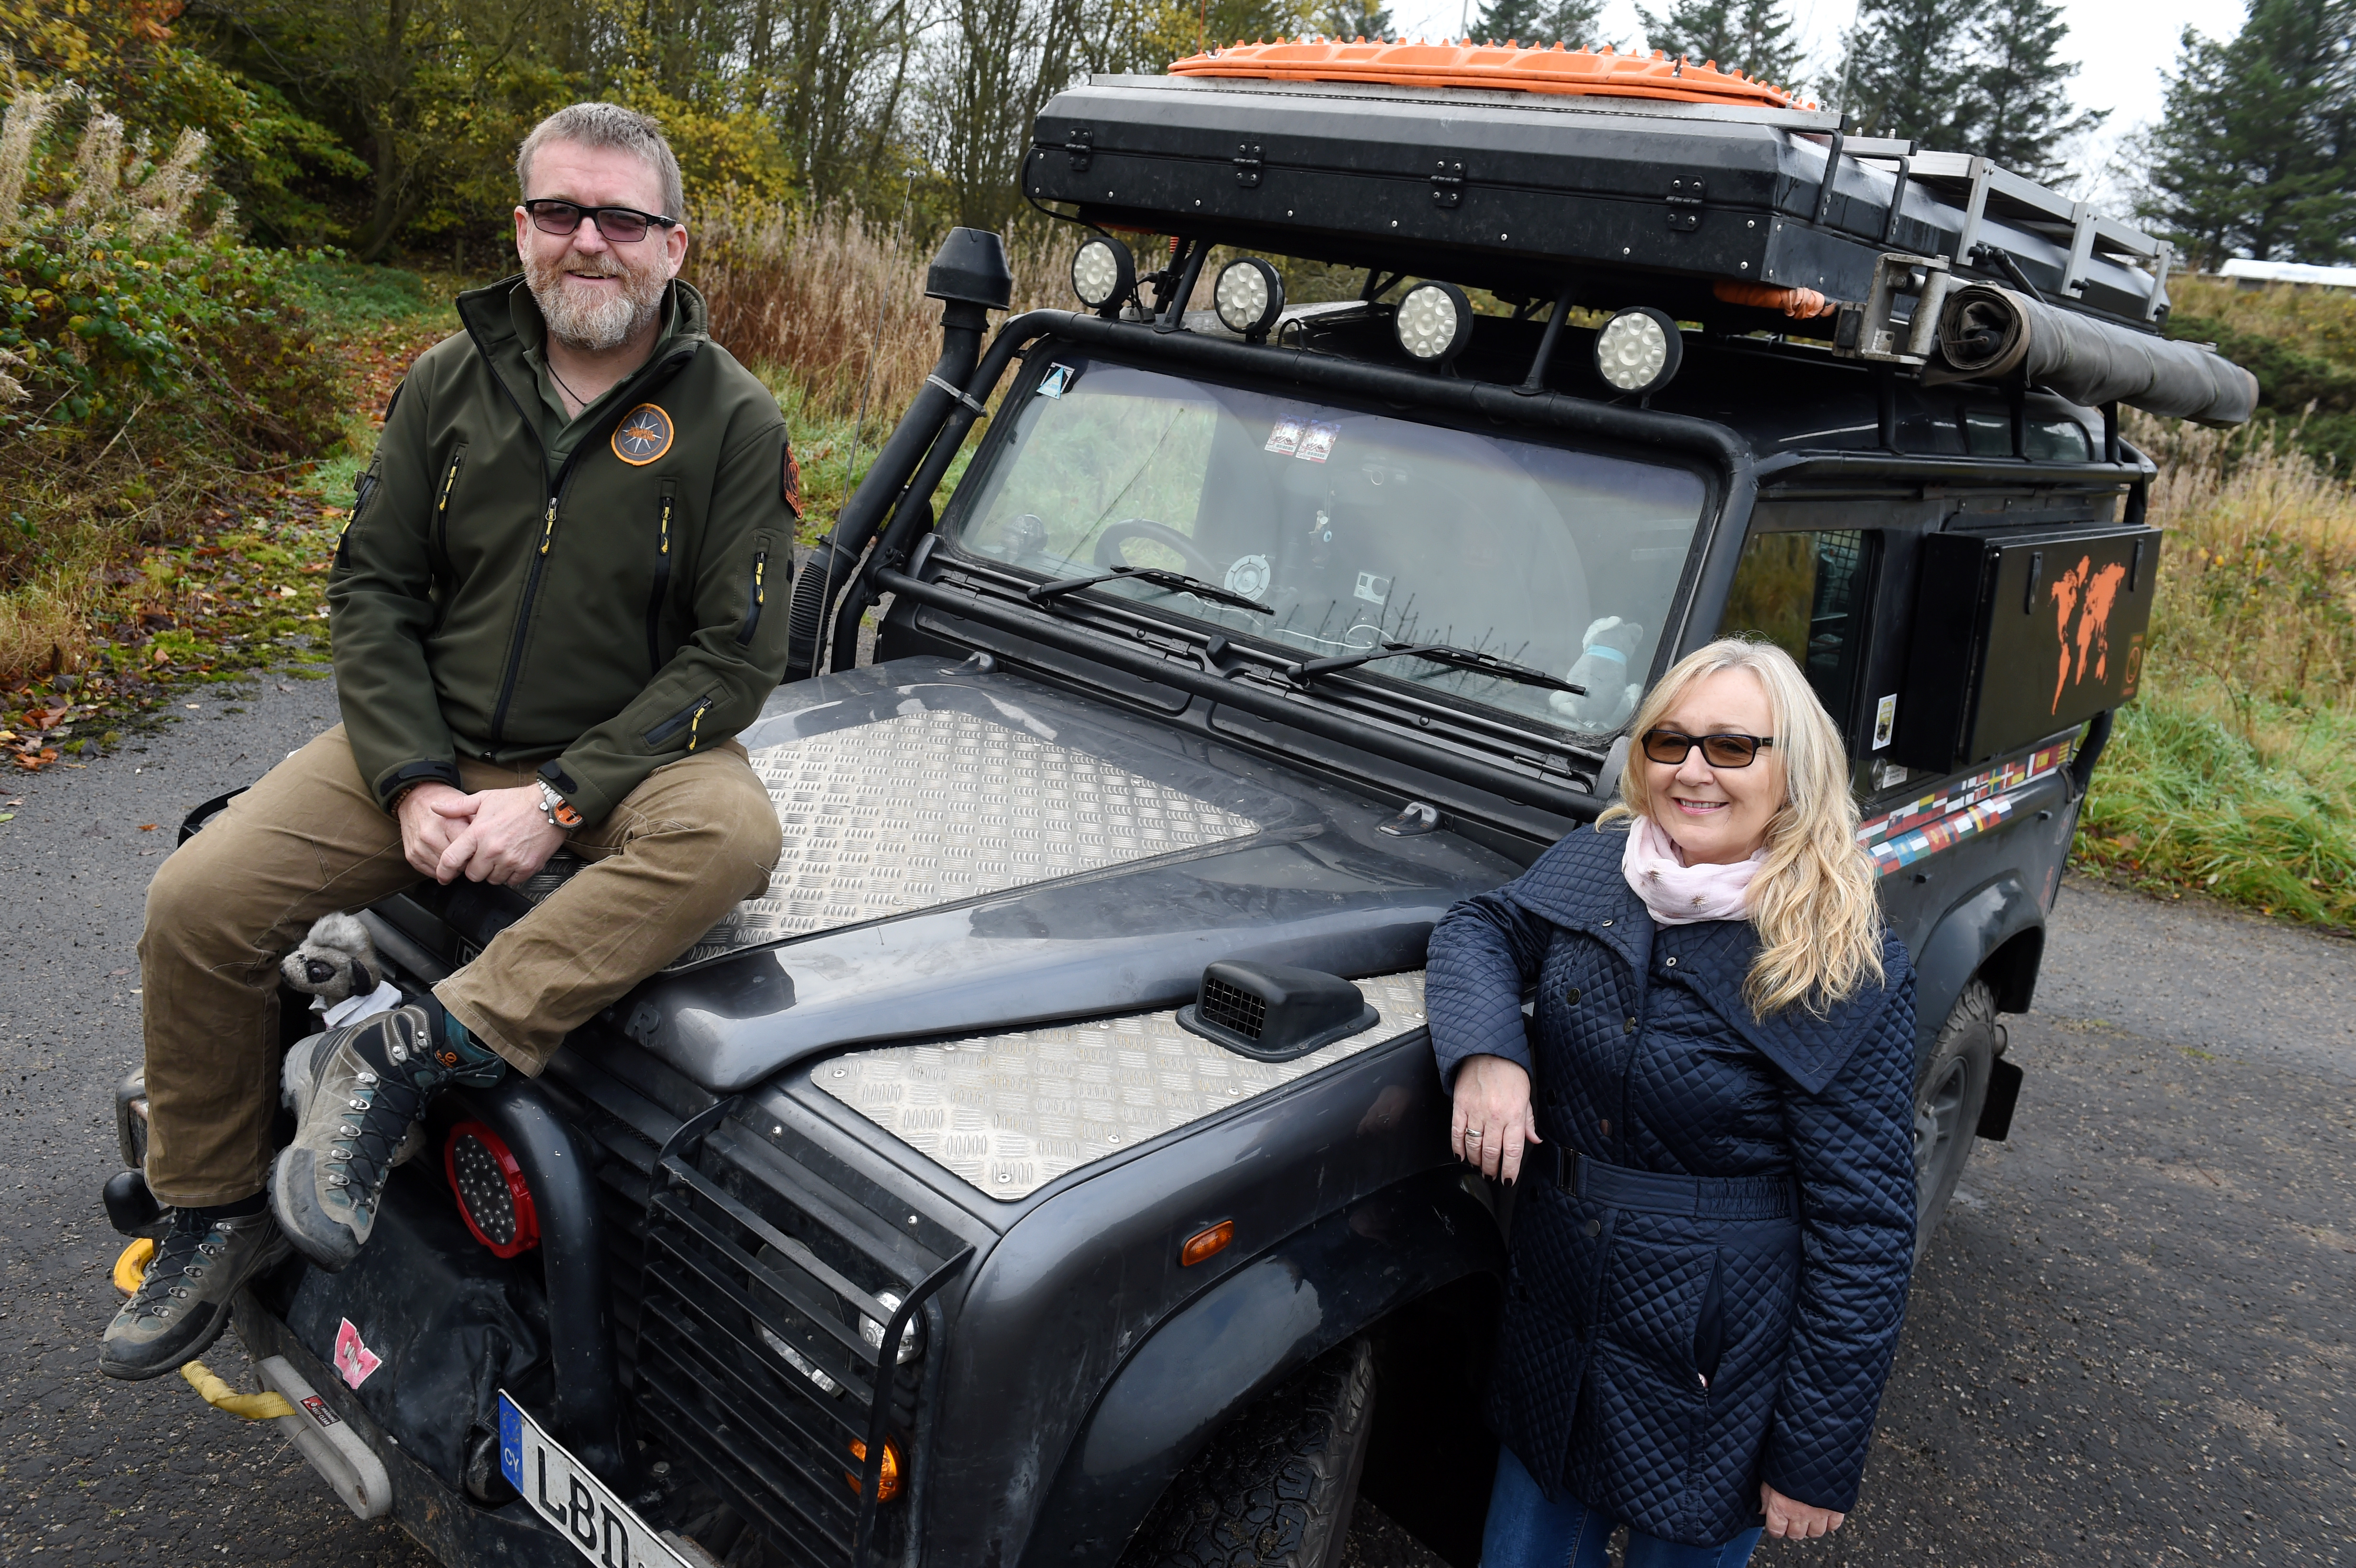 Angela Brown and partner Dave Spinks have recently completed a 200 day, 26 country trip of more than 24,000 miles from Newtonhill to Mongolia in a 2001 Land Rover Defender 90 (Picture by Kenny Elrick)